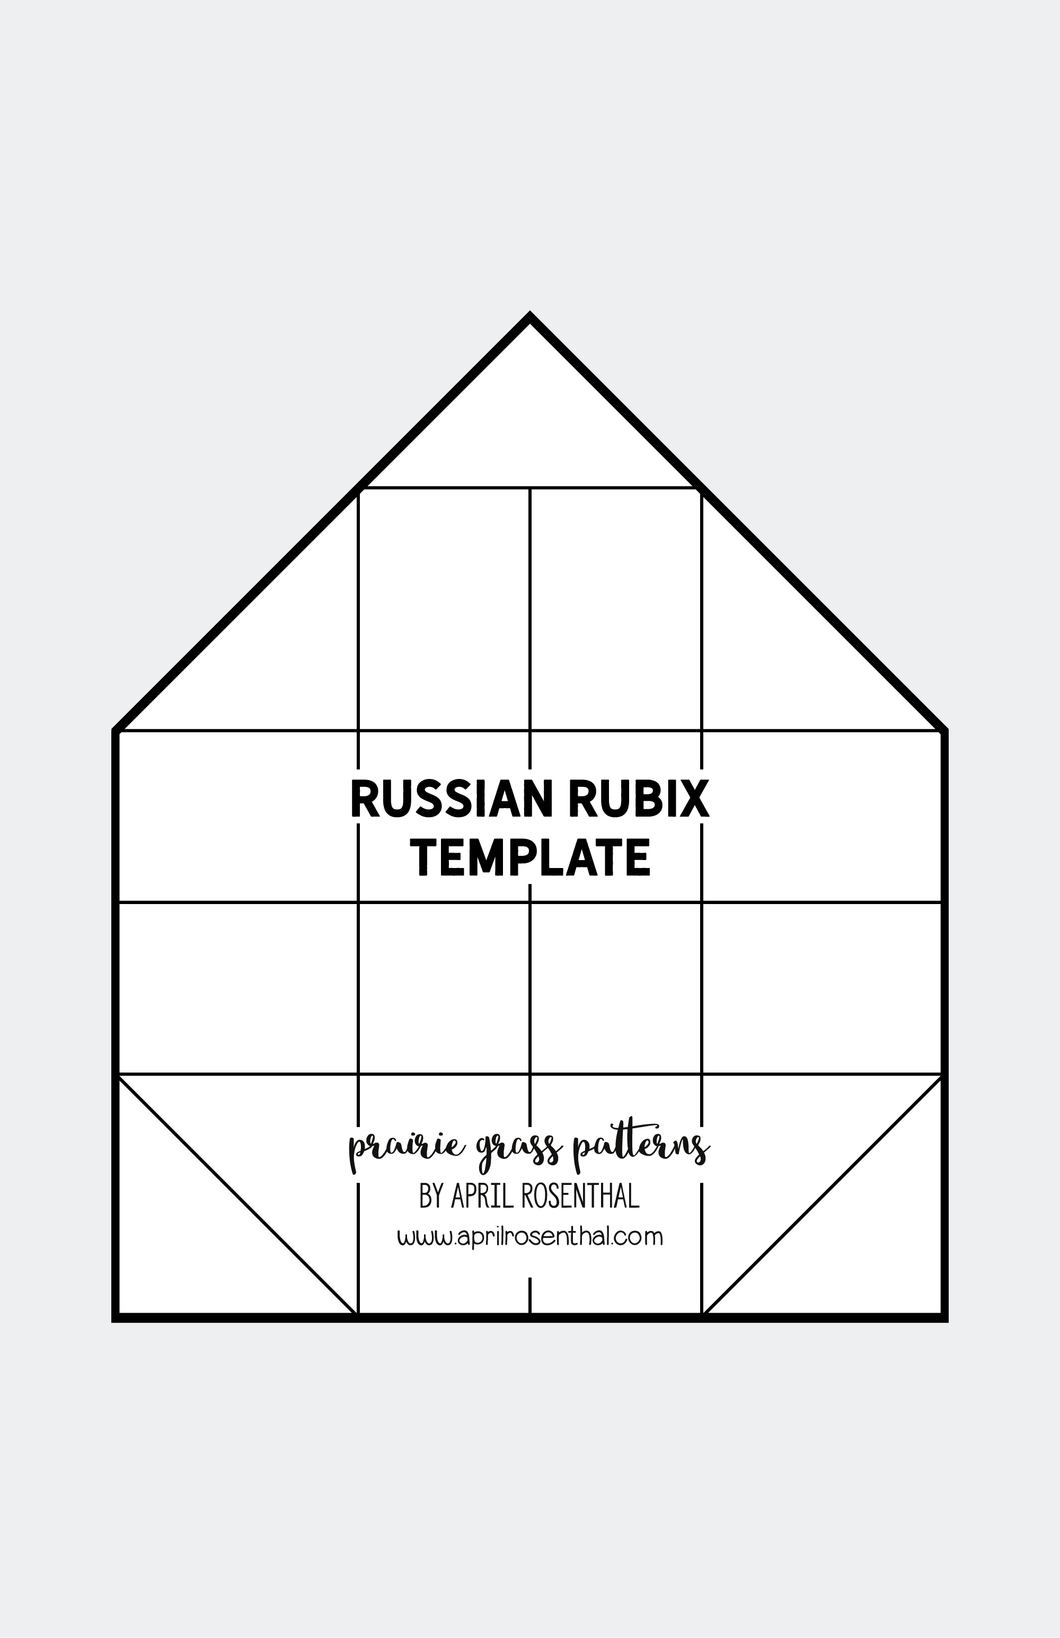 Russian Rubix Template